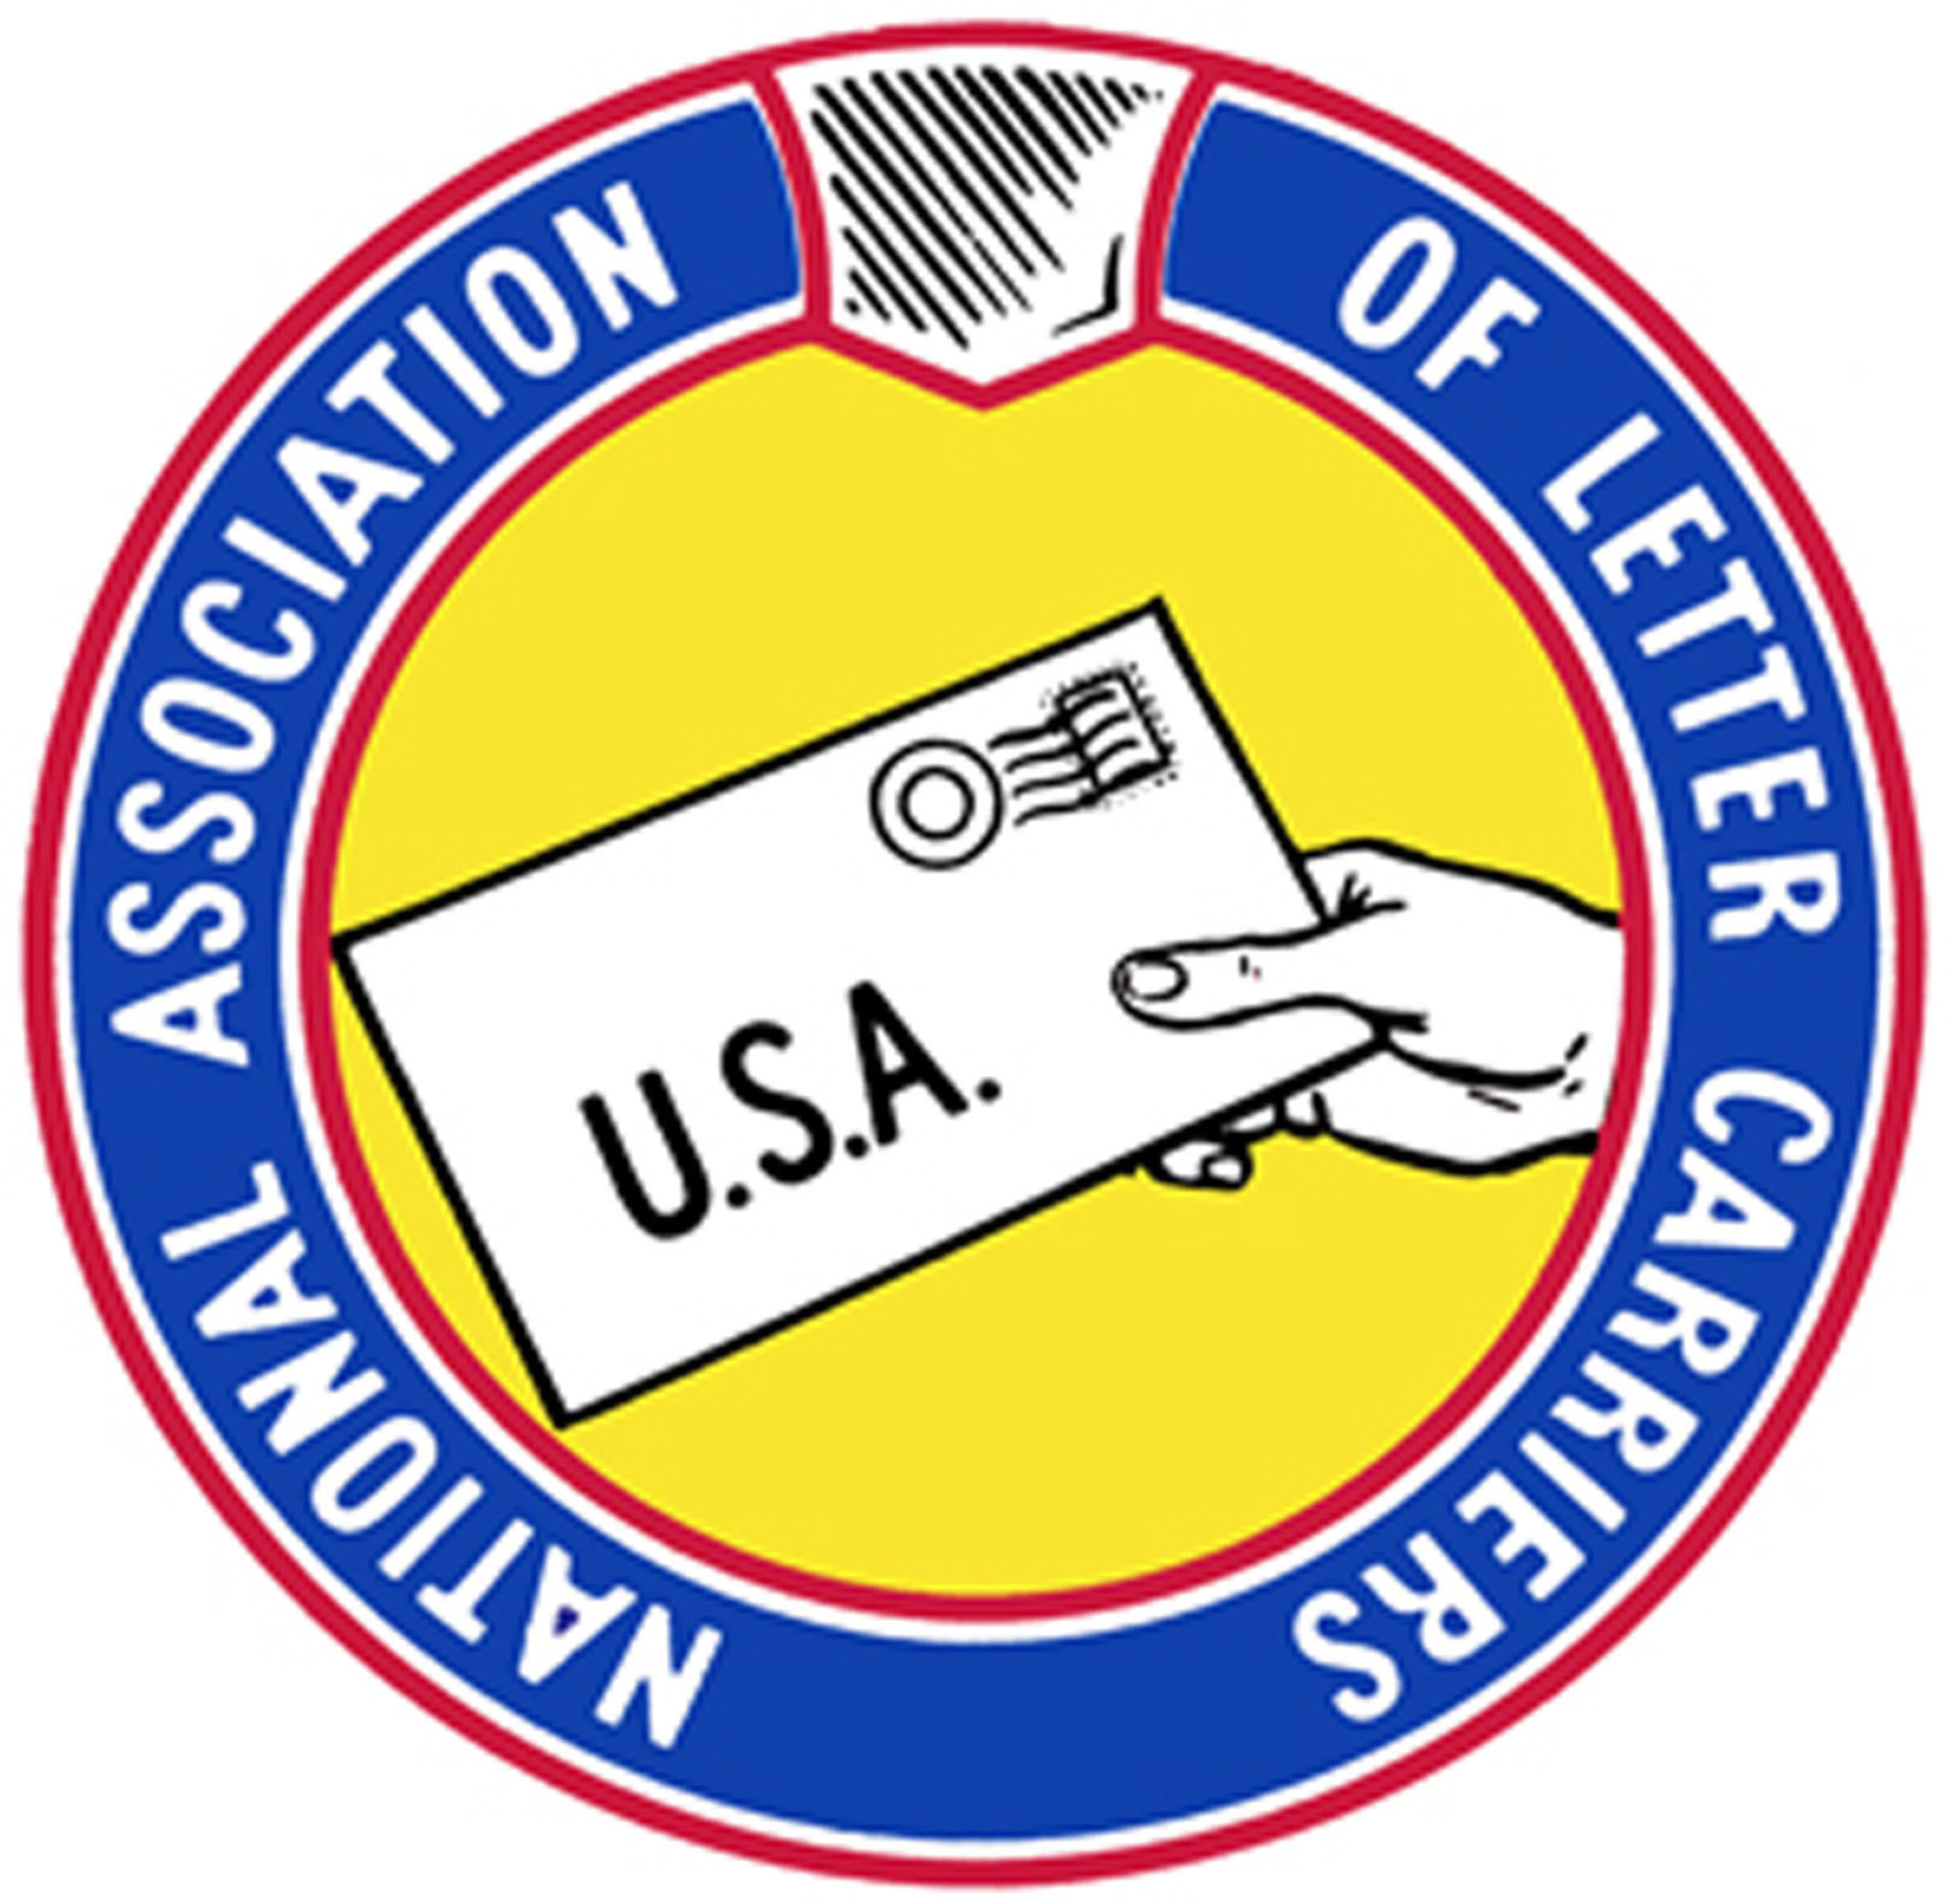 National Association of Letter Carriers. (PRNewsFoto/National Association of Letter Carriers) (PRNewsFoto/)